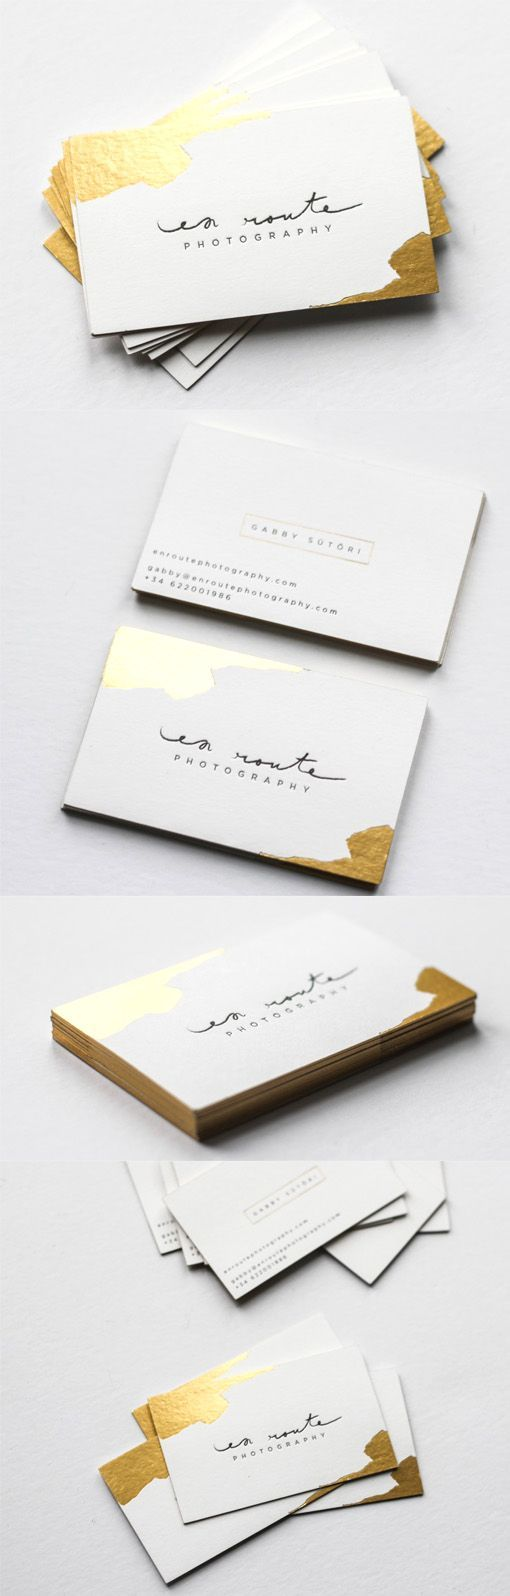 Luxurious Gold Foil Accented Business Card For A Photographer